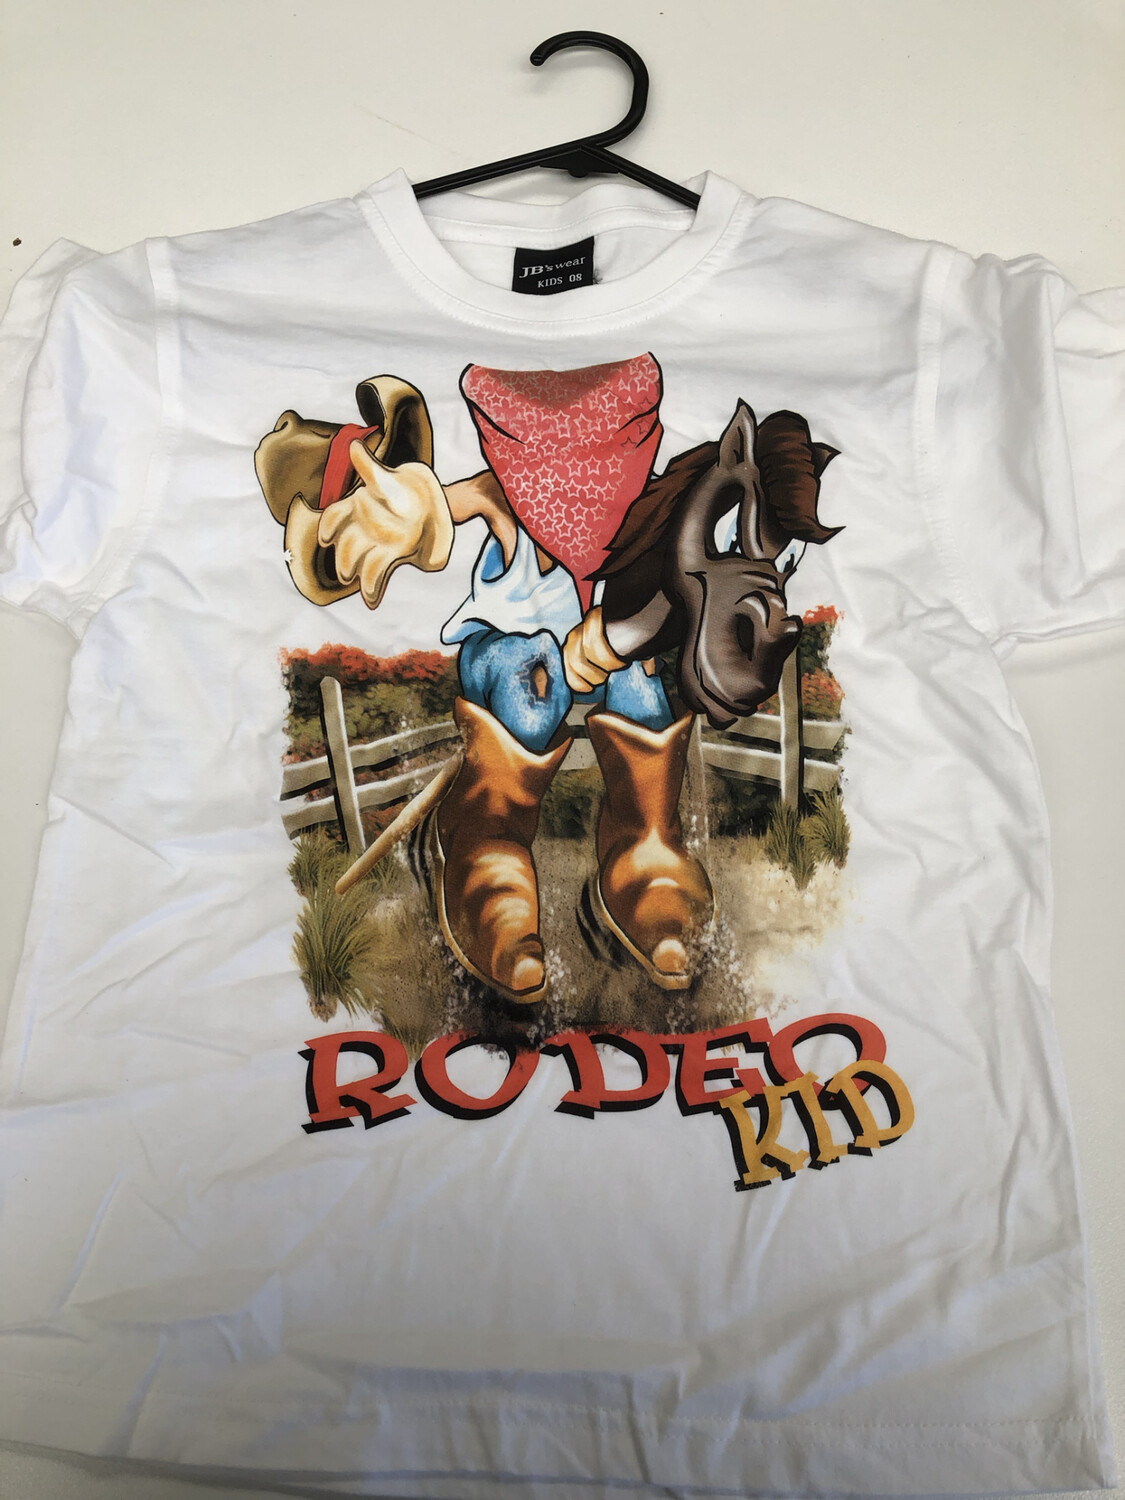 Size 8 Rodeo Kid